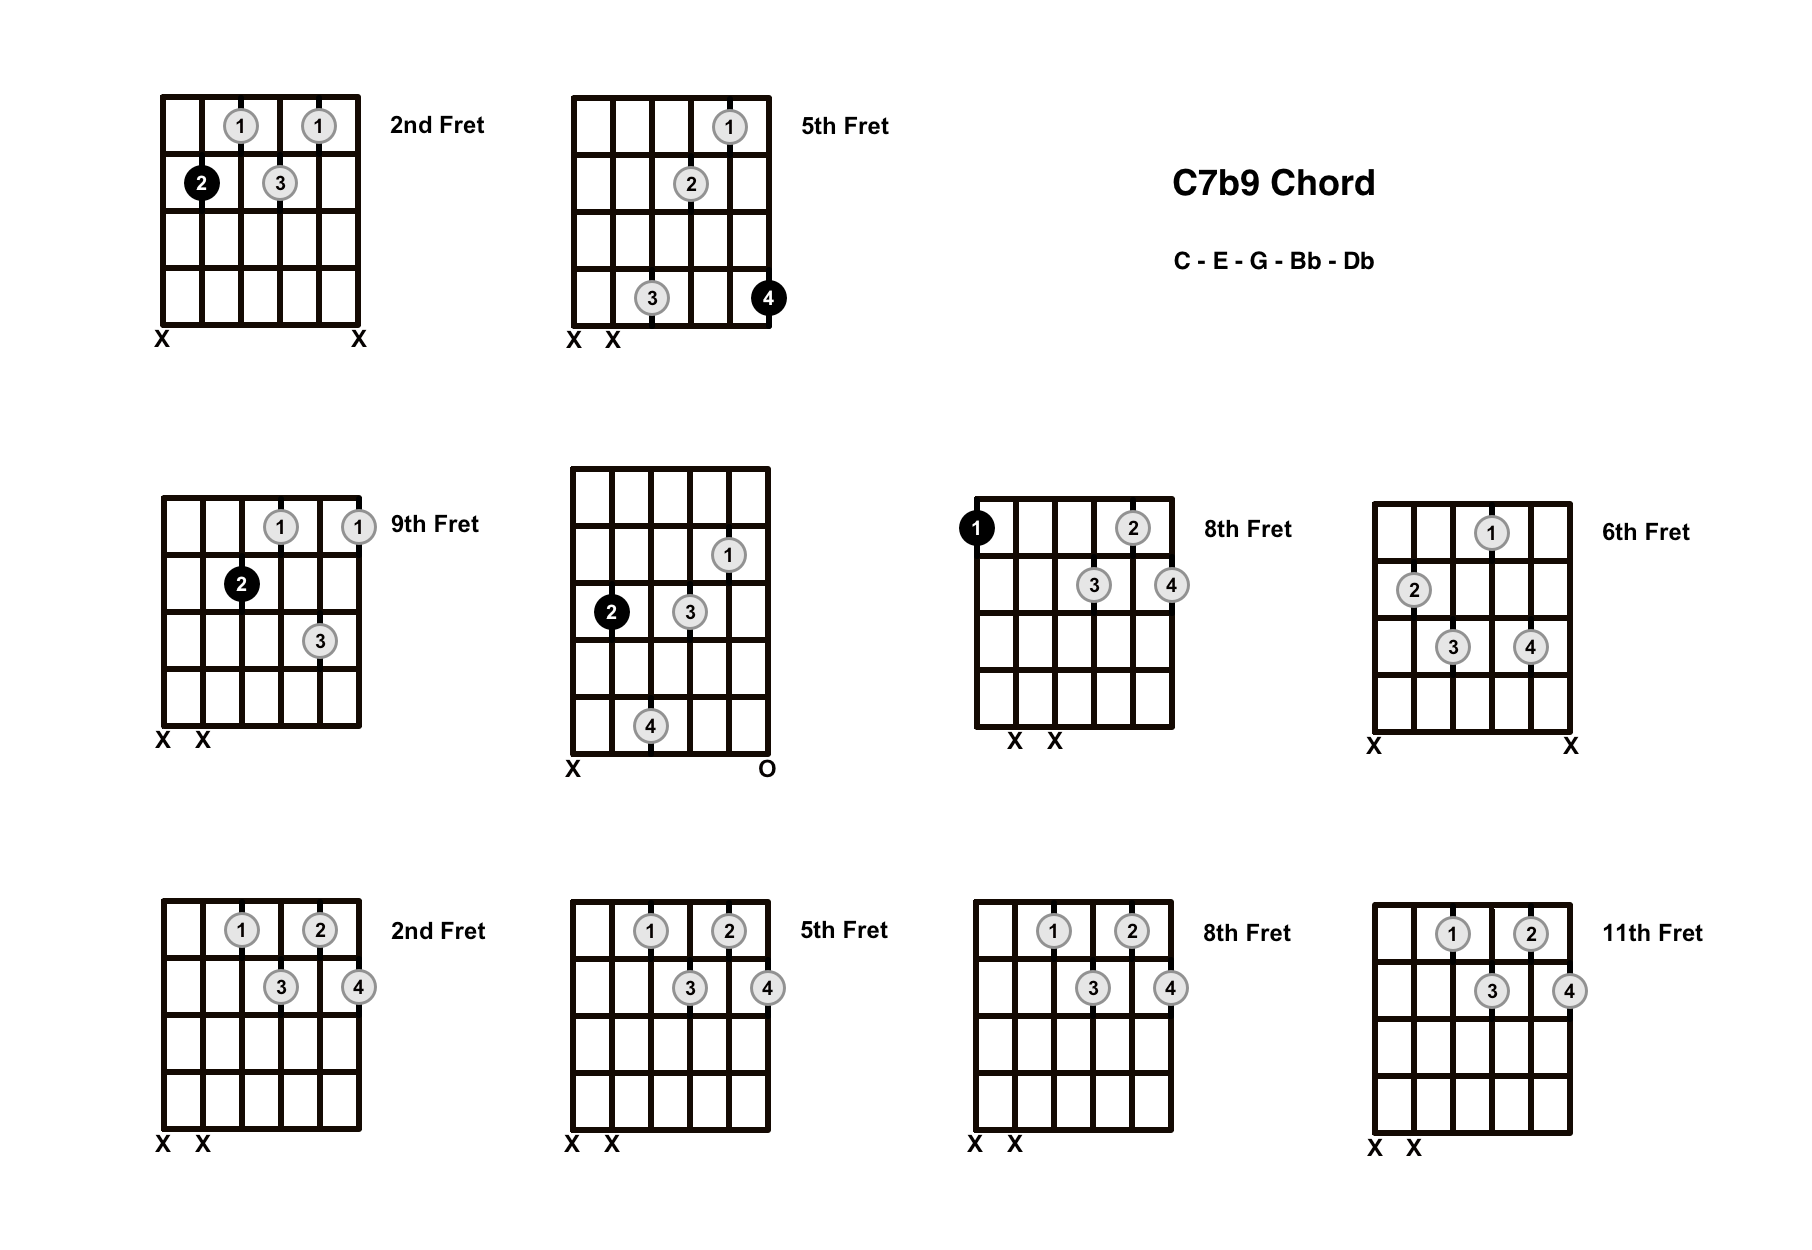 C7b9 Chord On The Guitar (C7 Flat 9) – Diagrams, Finger Positions and Theory